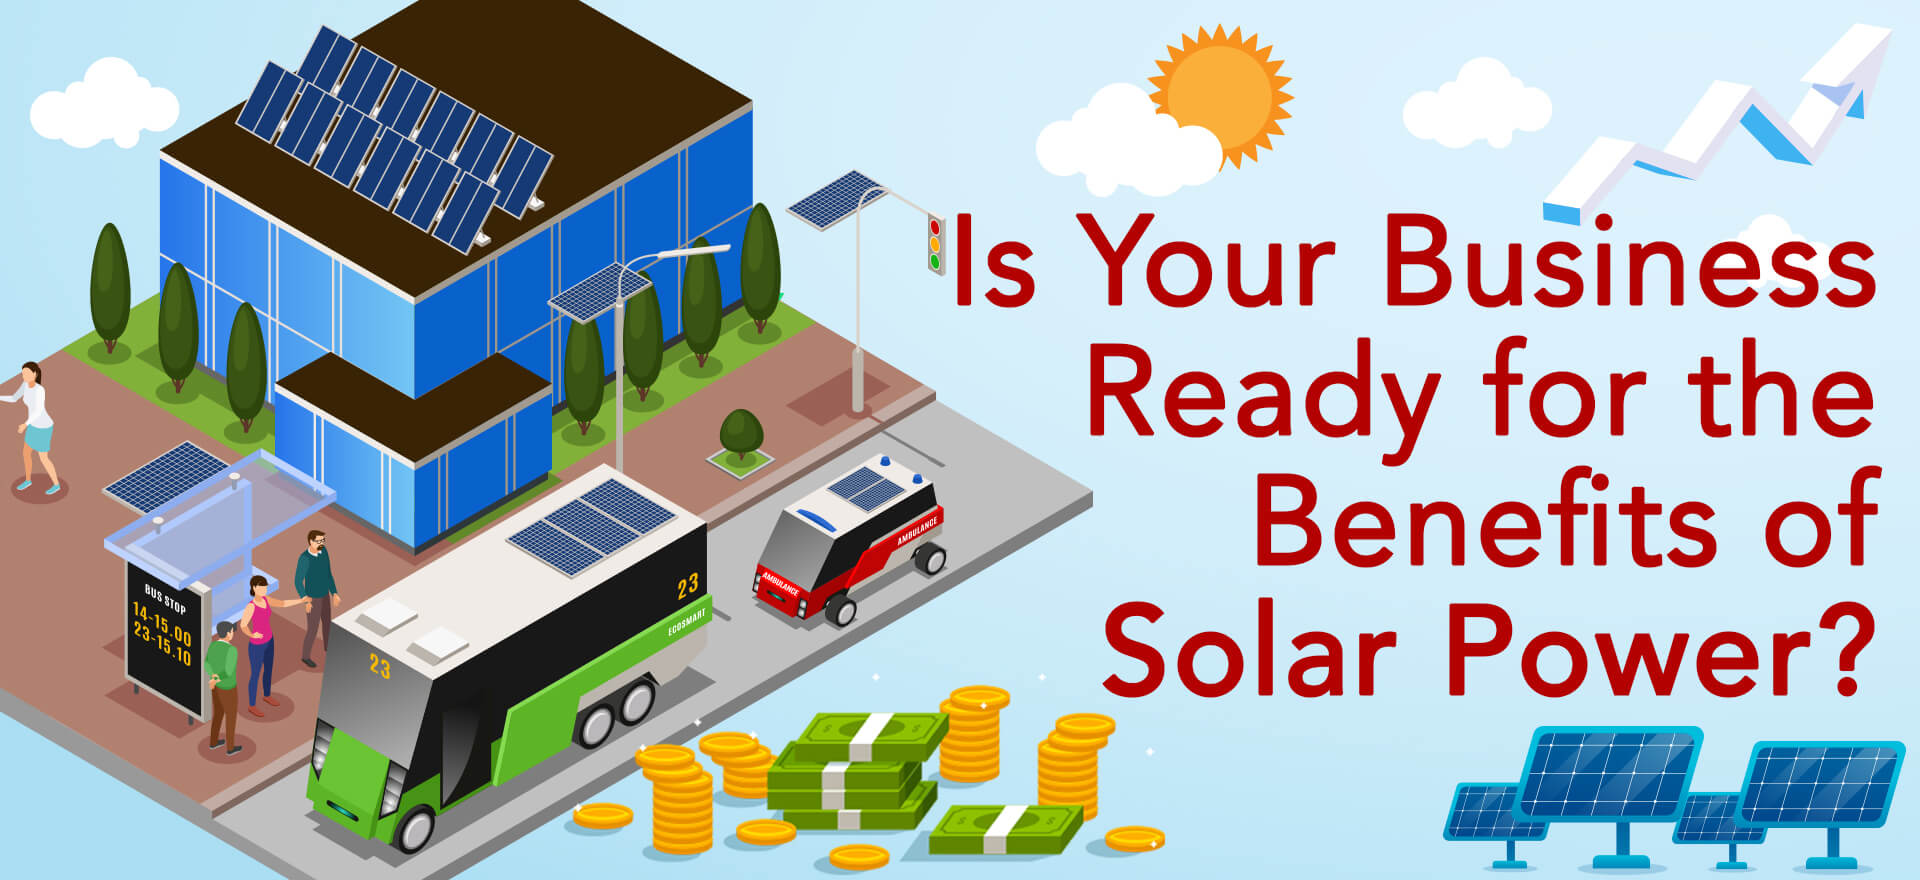 Is Your Business Ready for the Benefits of Solar Power?